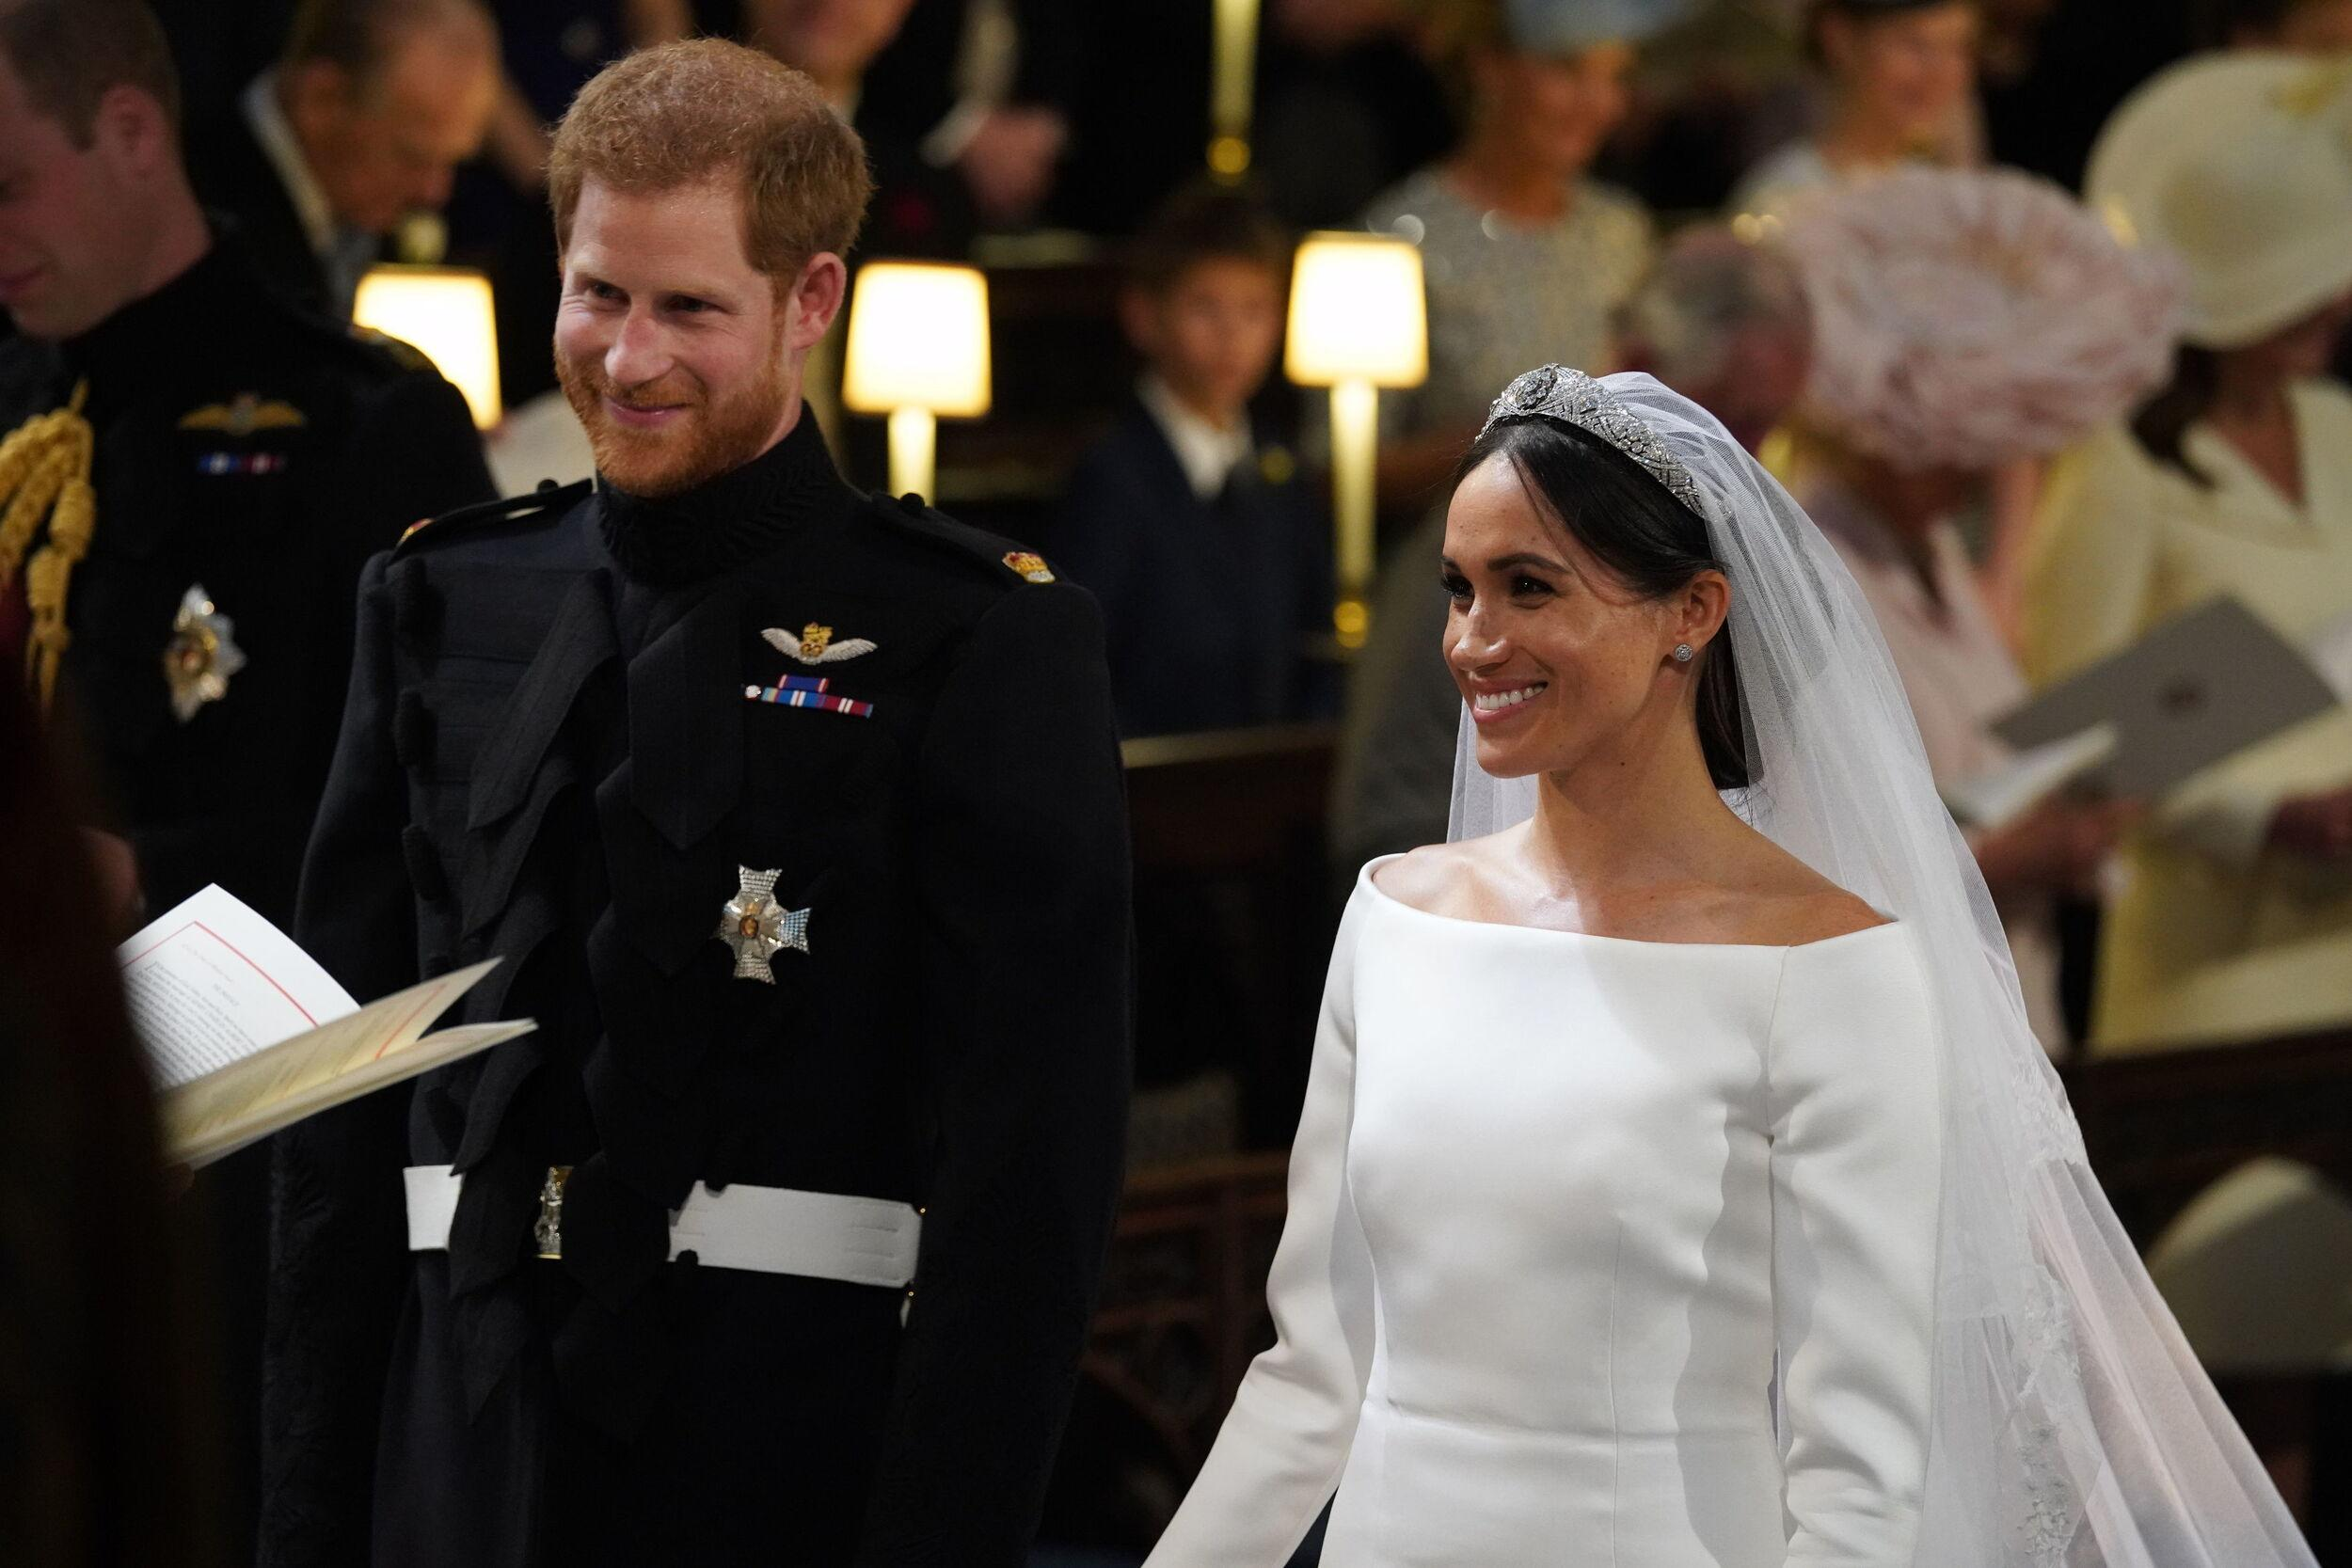 Prince Harry and Meghan Markle in St George's Chapel at Windsor Castle during their wedding service.